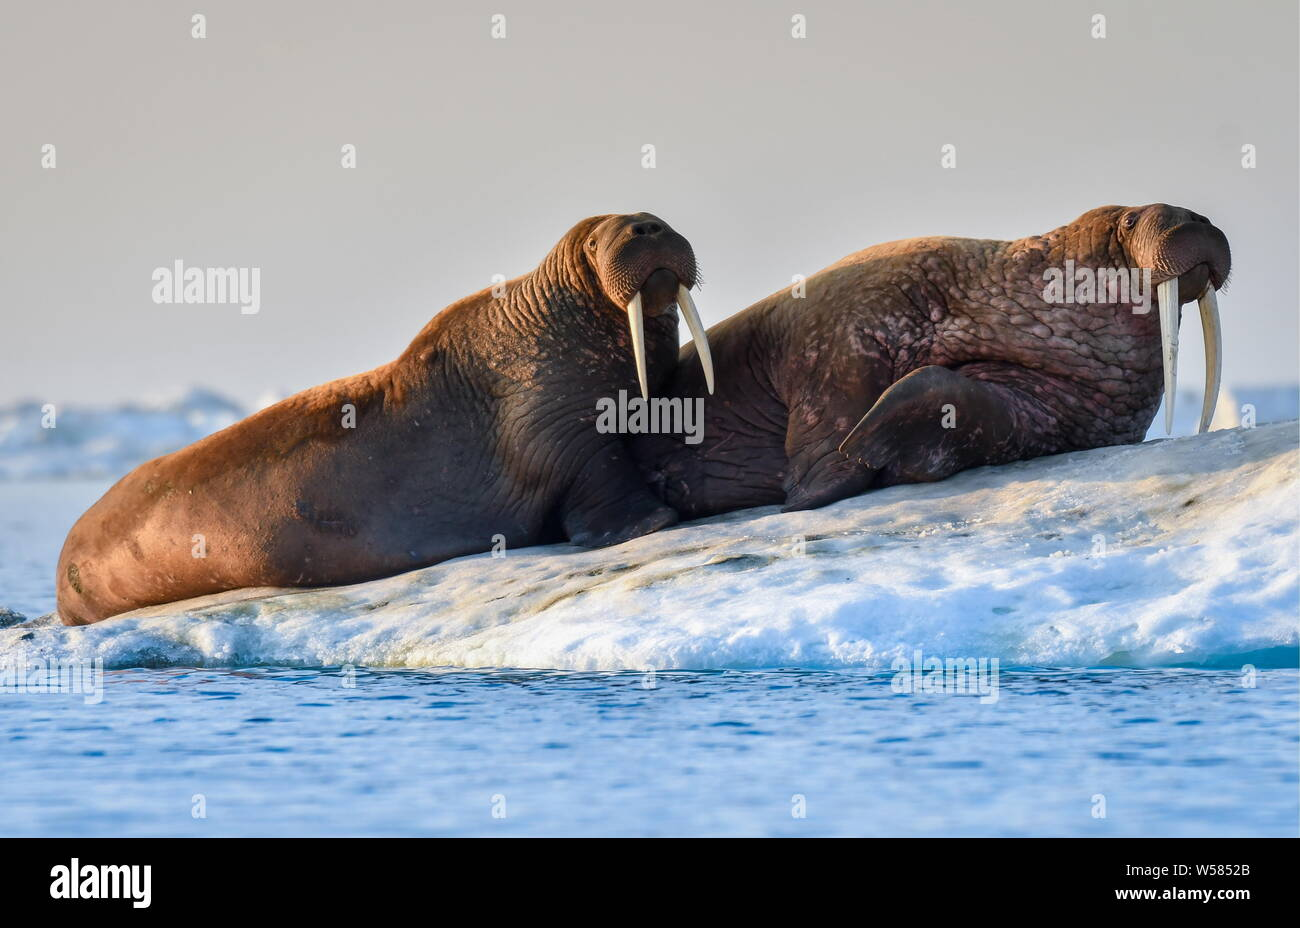 Russia. 13th July, 2019. CHUKOTKA, RUSSIA - JULY 13, 2019: Walruses on an ice flow off Wrangel Island, part of the Wrangel Island State Nature Reserve in the Arctic Sea. Yuri Smityuk/TASS Credit: ITAR-TASS News Agency/Alamy Live News Stock Photo